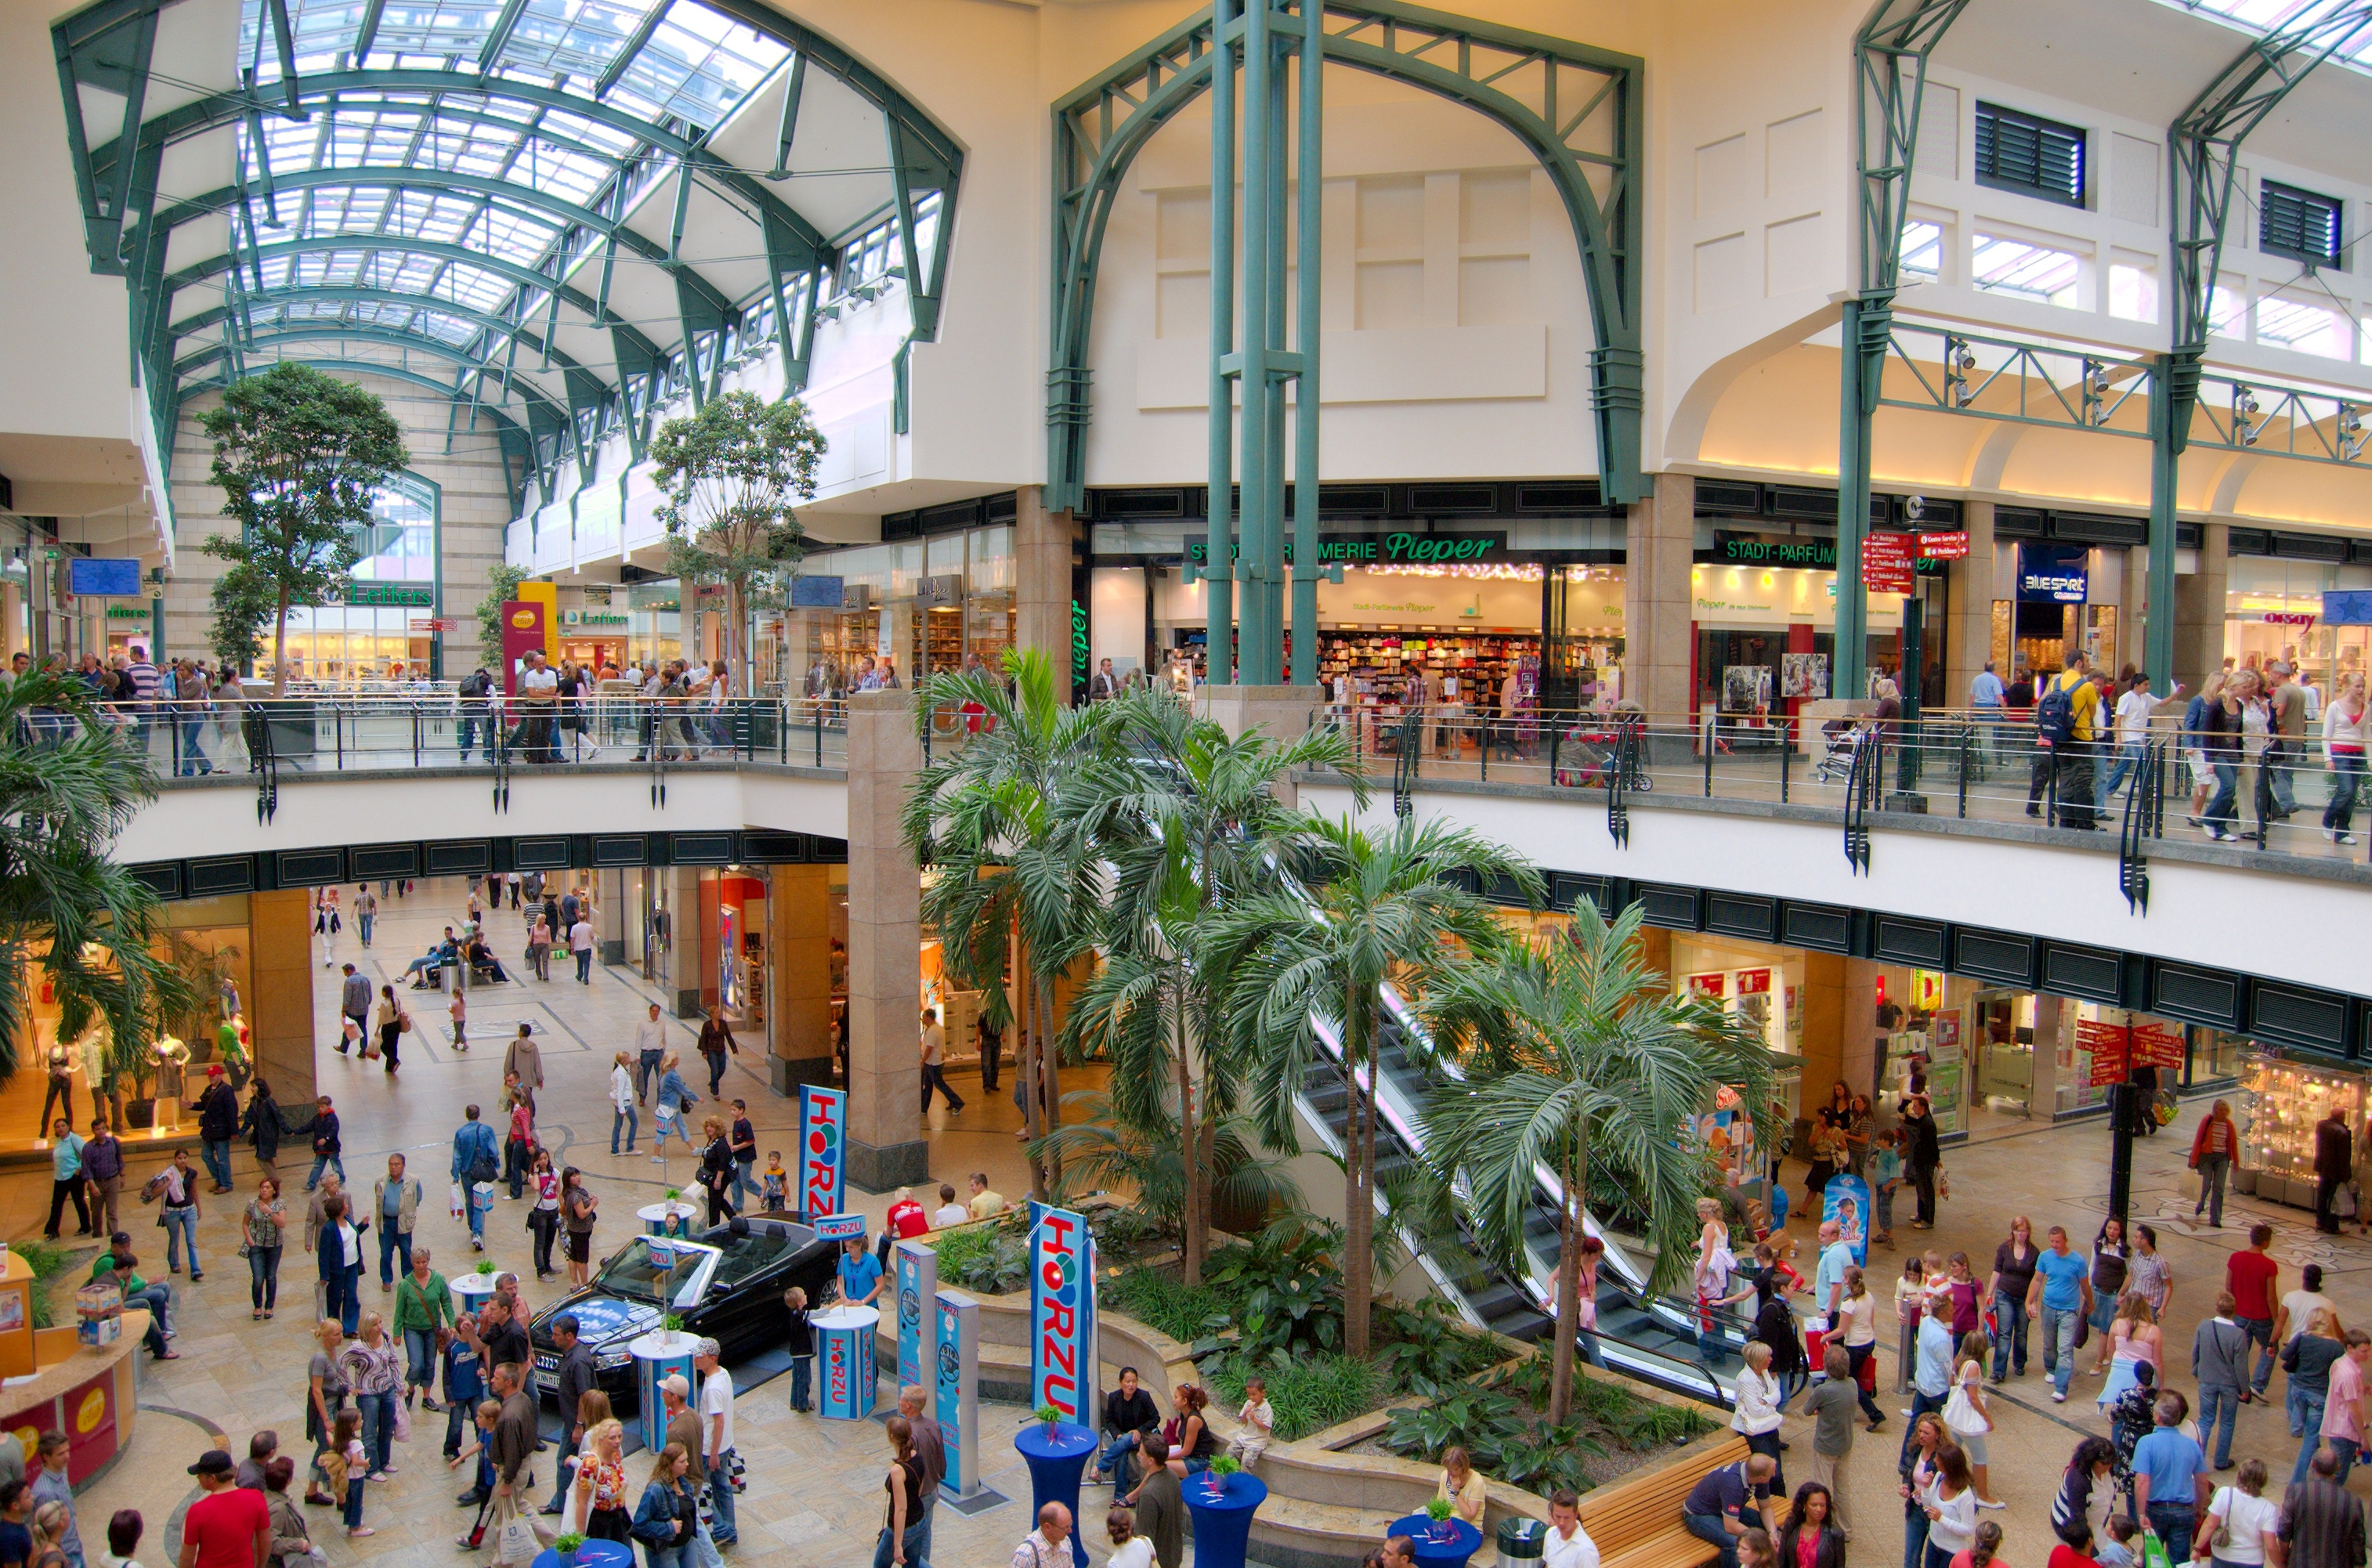 Centro shopping mall in oberhausen thousand wonders for Top 10 online shopping sites in the world